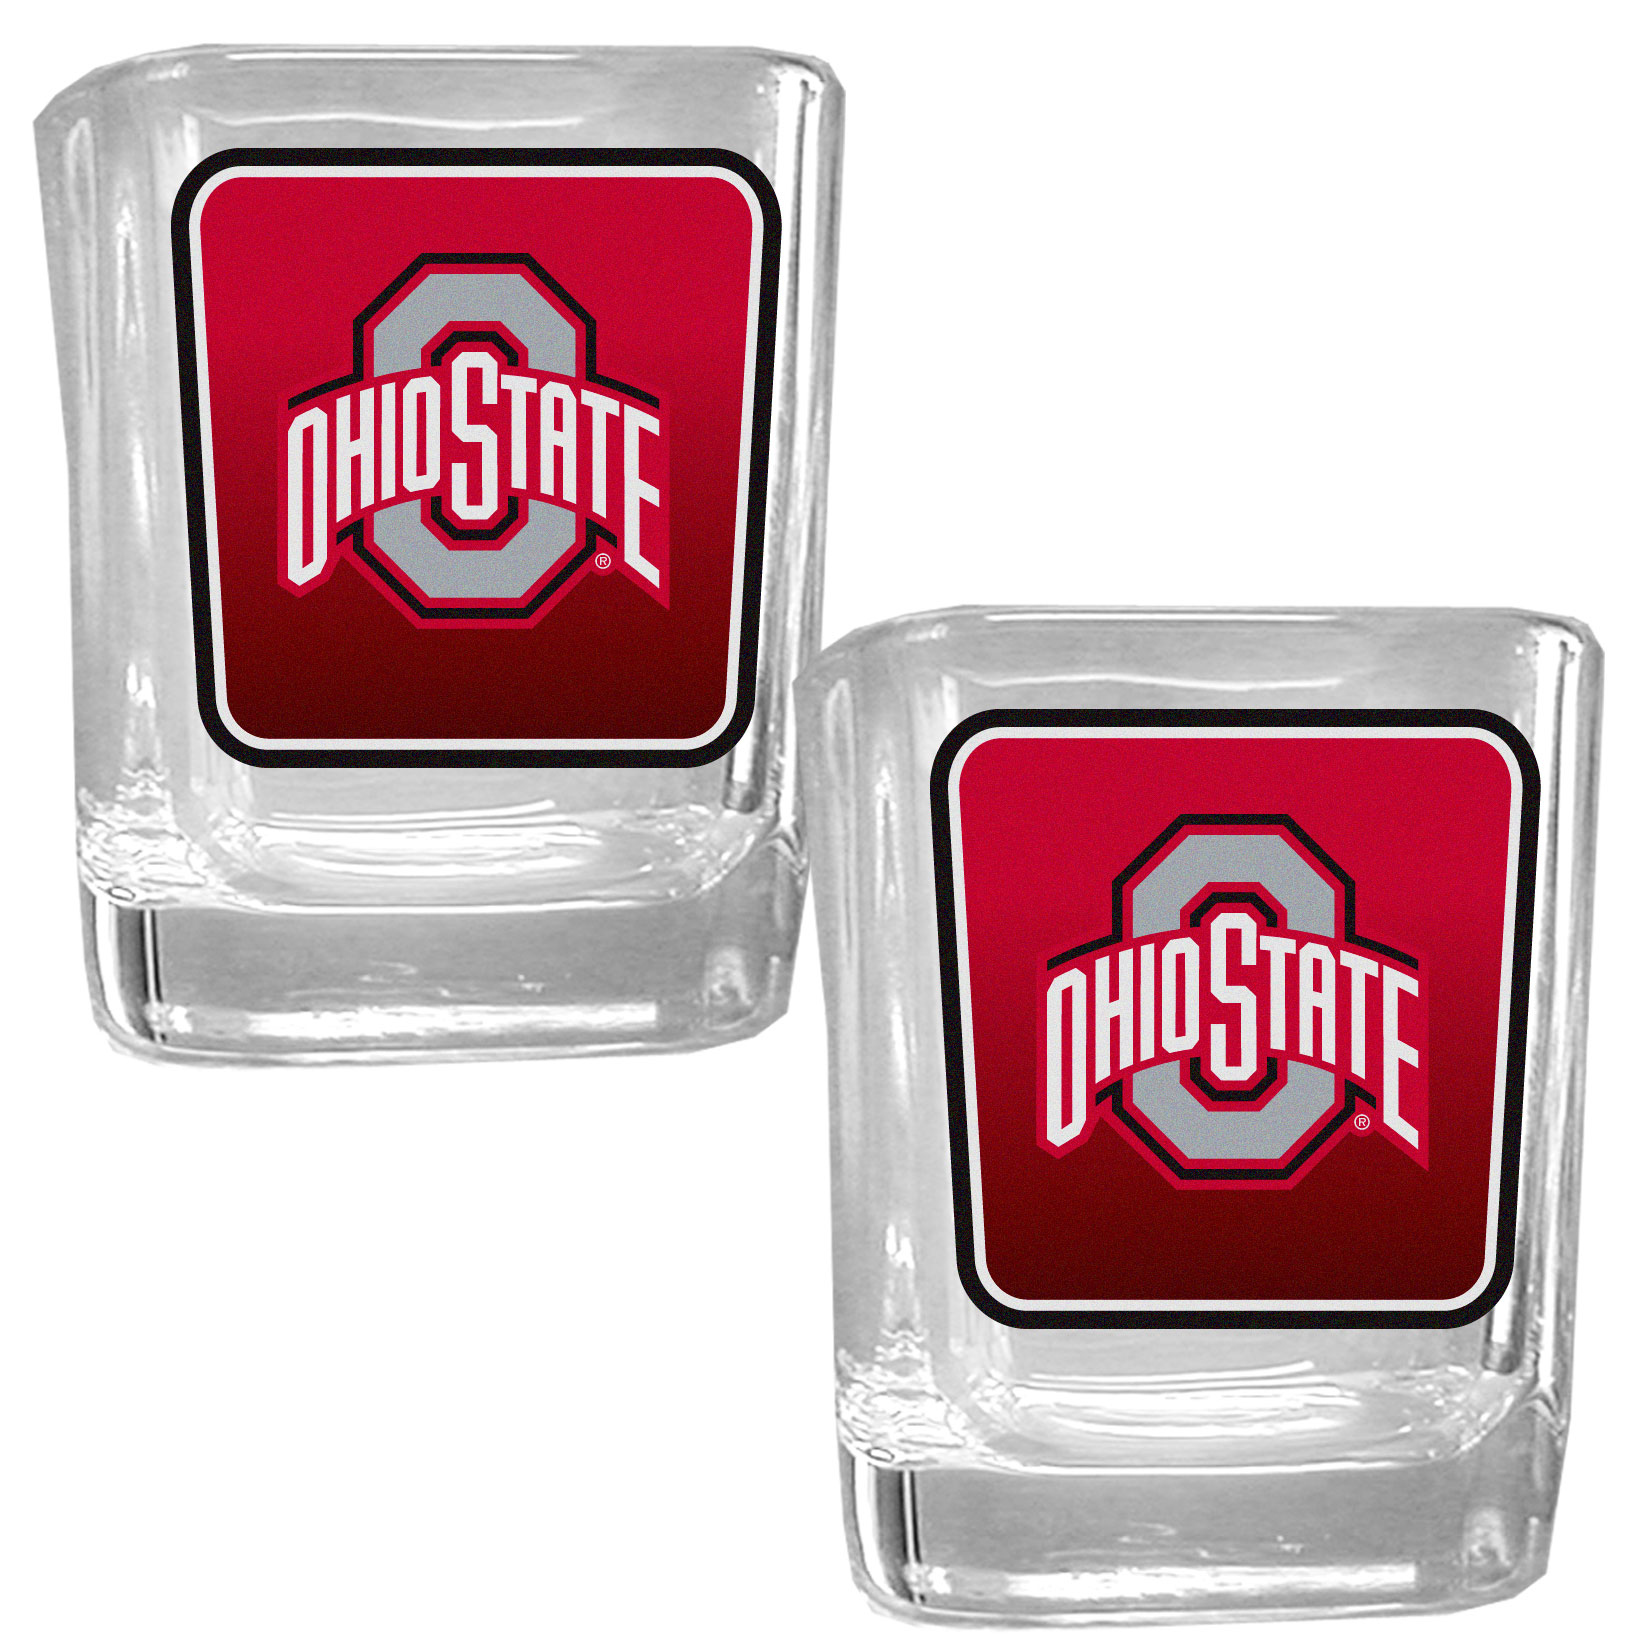 Ohio St. Buckeyes Square Glass Shot Glass Set - Our glass shot glasses are perfect for collectors or any game day event. The 2 ounce glasses feature bright, vidid digital Ohio St. Buckeyes graphics. Comes in a set of 2.